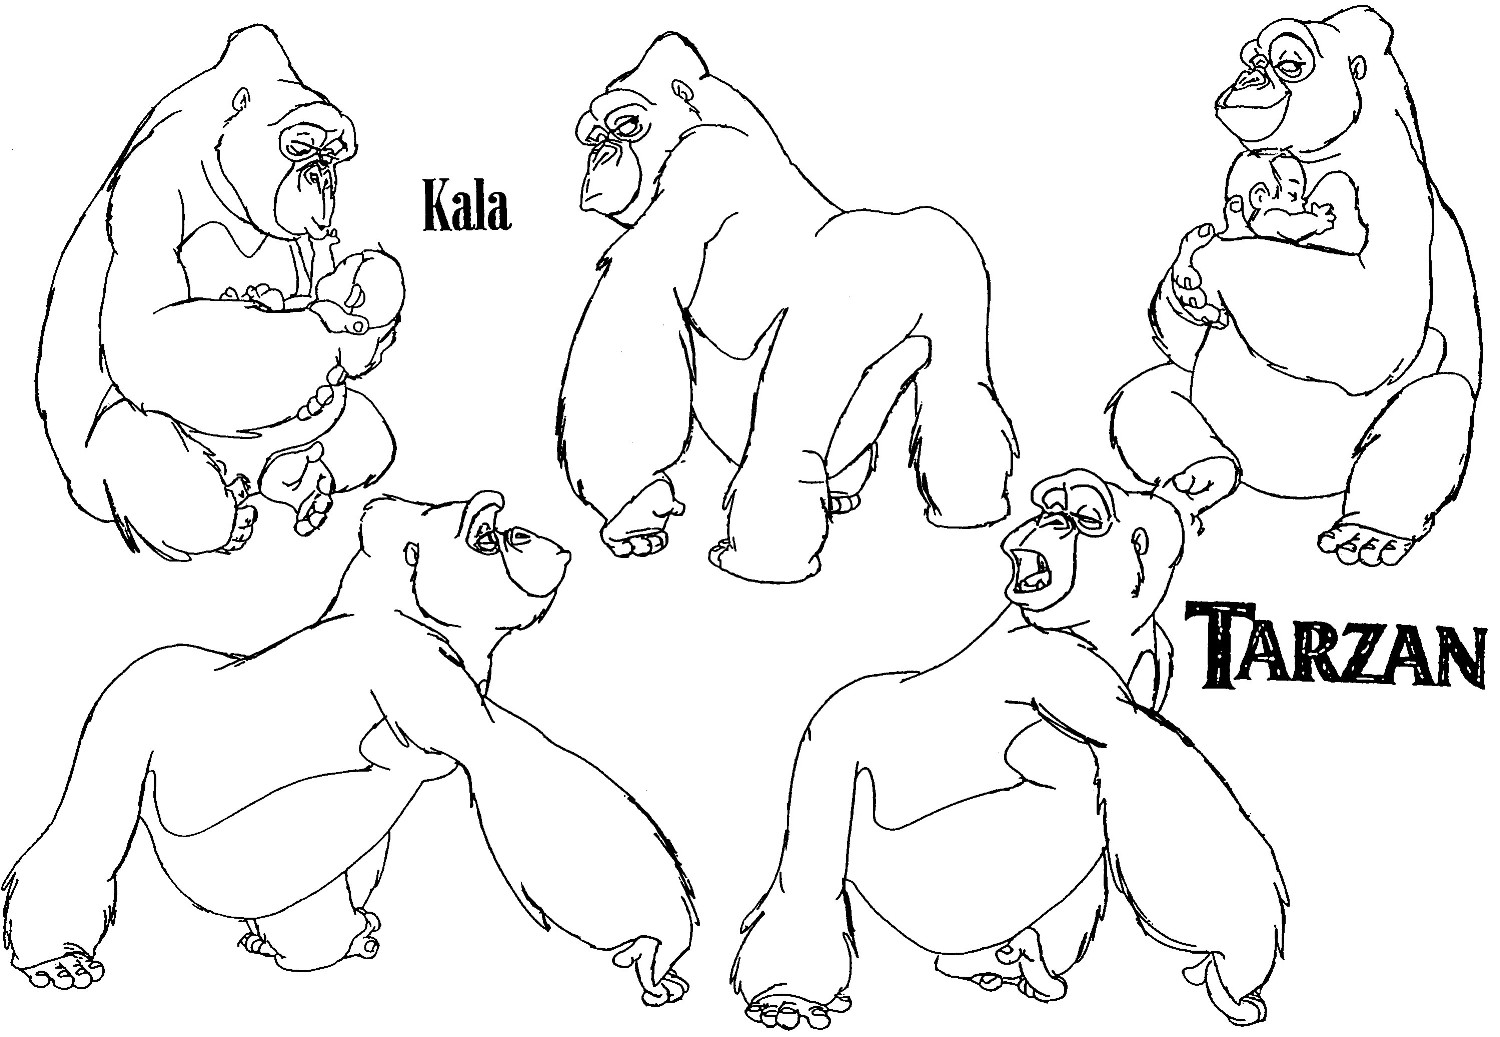 Refart At Calarts Tarzan Gorilla Model Sheets 2